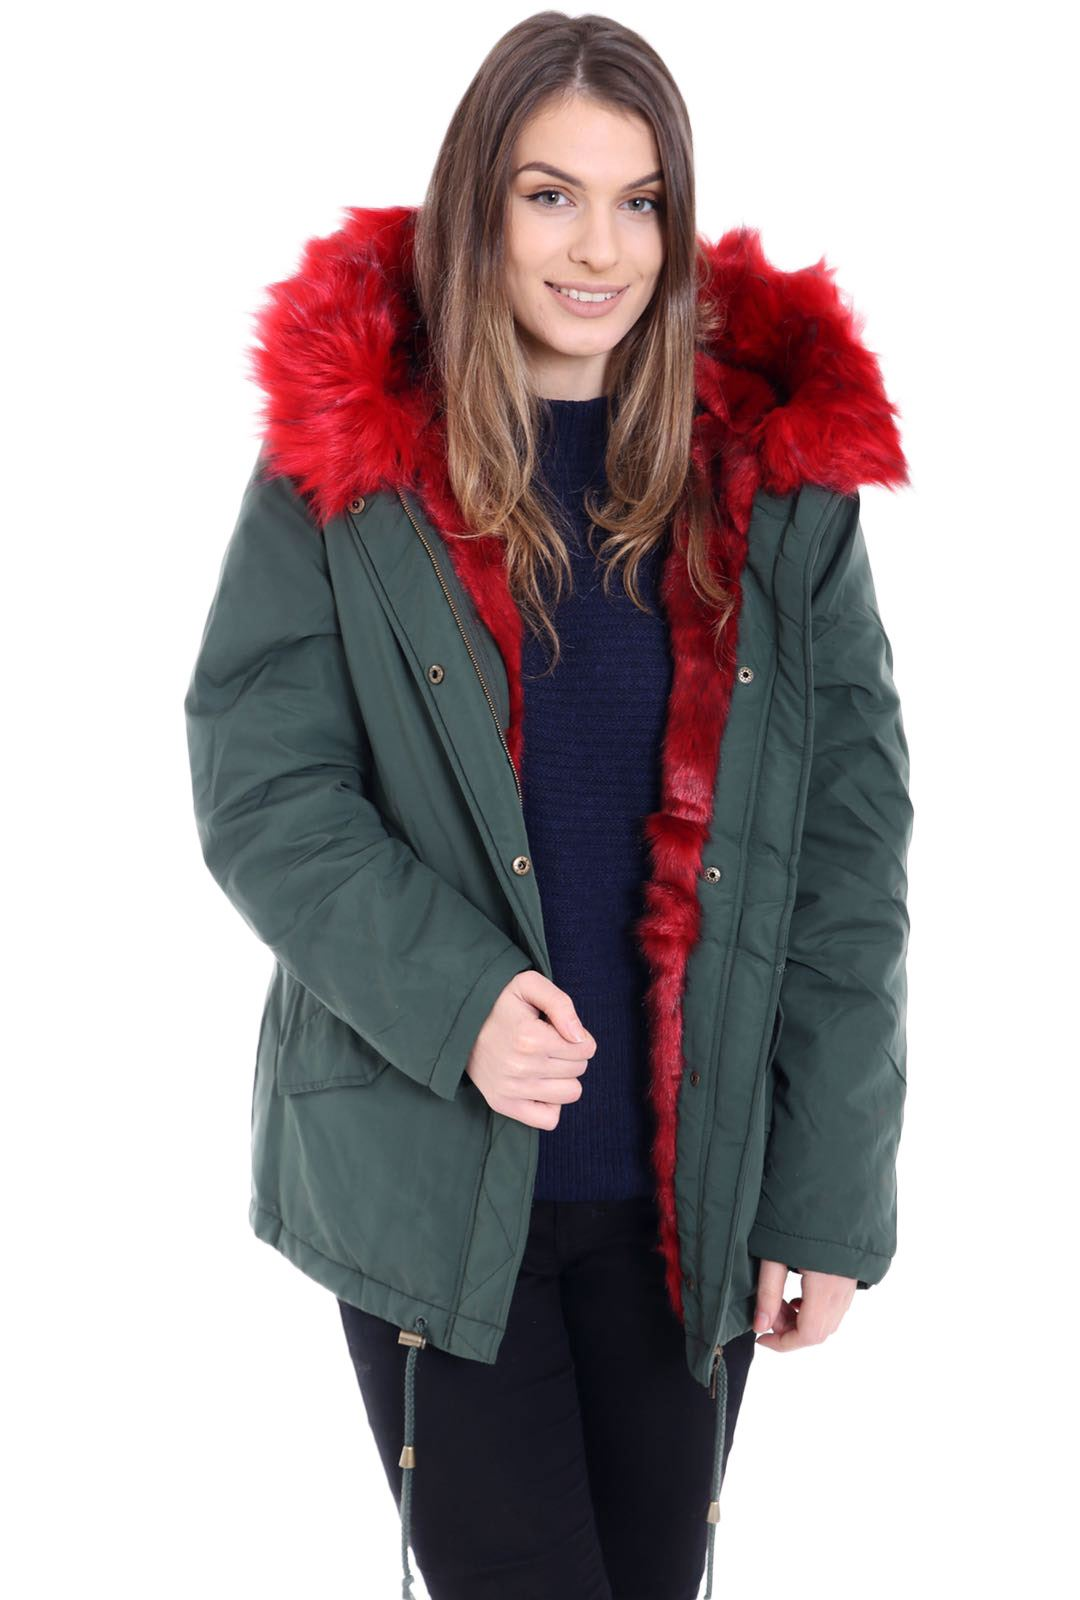 Long Style Stand Collar Real Mink Fur Lining Parka, Long Style Stand Collar Real Mink Fur Lining Parka Suppliers Directory - Find variety Long Style Stand Collar Real Mink Fur Lining Parka Suppliers, Manufacturers, Companies from around the World at fur parka,real fur parka,faux fur parka, Women's Jackets & Coats.